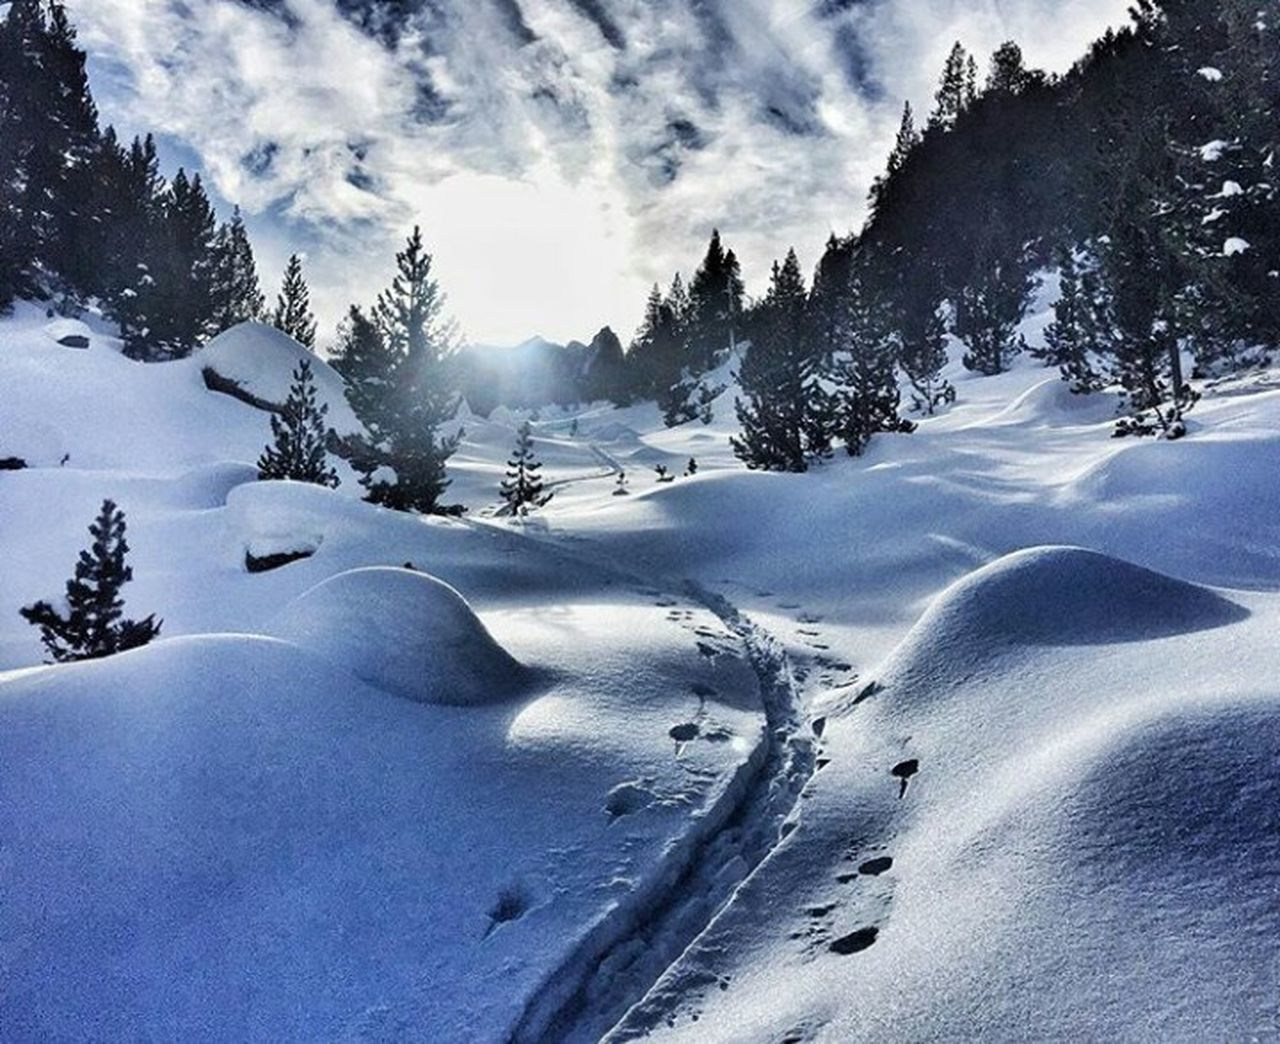 Pyrenees Snow Cold Temperature Landscape Mountain Snowboarding Beauty In Nature Outdoors Tree Scenics Nature Day No People First Eyeem Photo The Week Of Eyeem Saturday Winter Sport Extreme Sports Cloud - Sky Sky